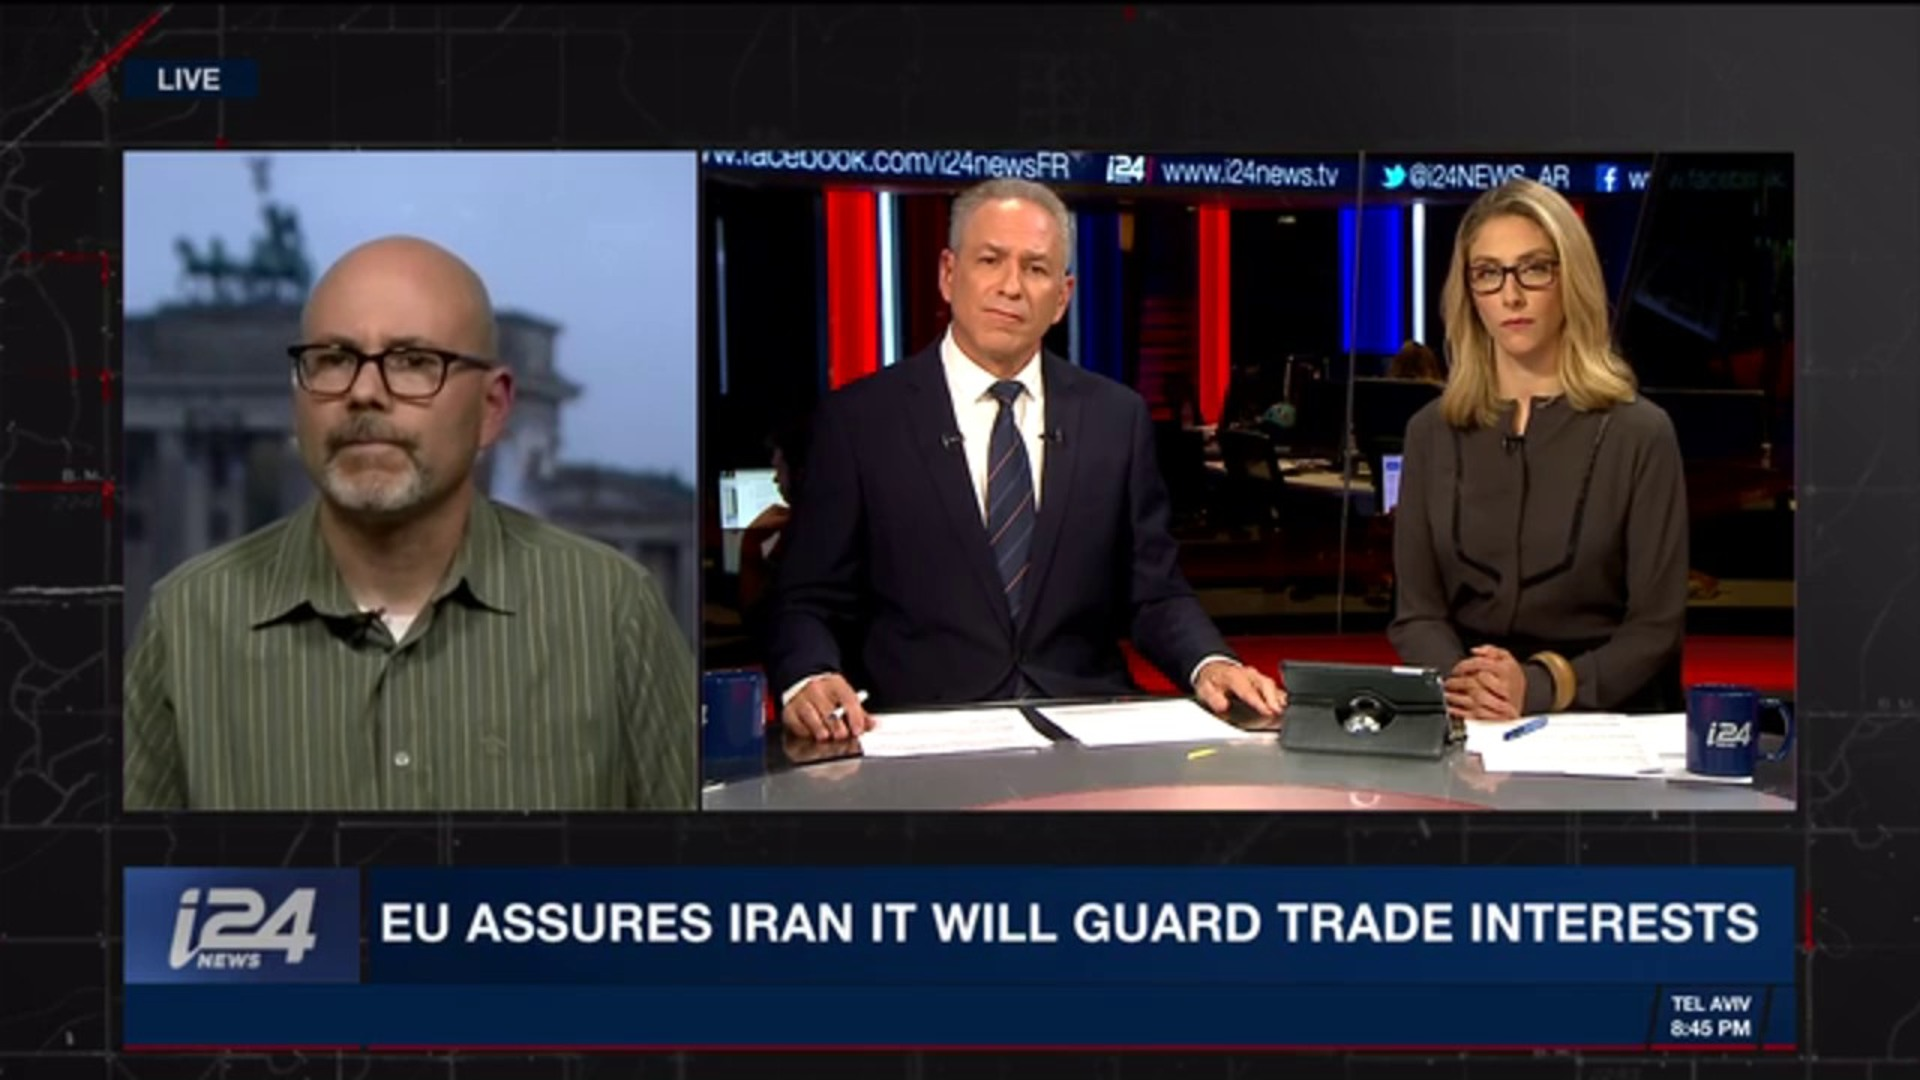 THE RUNDOWN | Nuclear diplomacy: Europe tries to save Iran deal